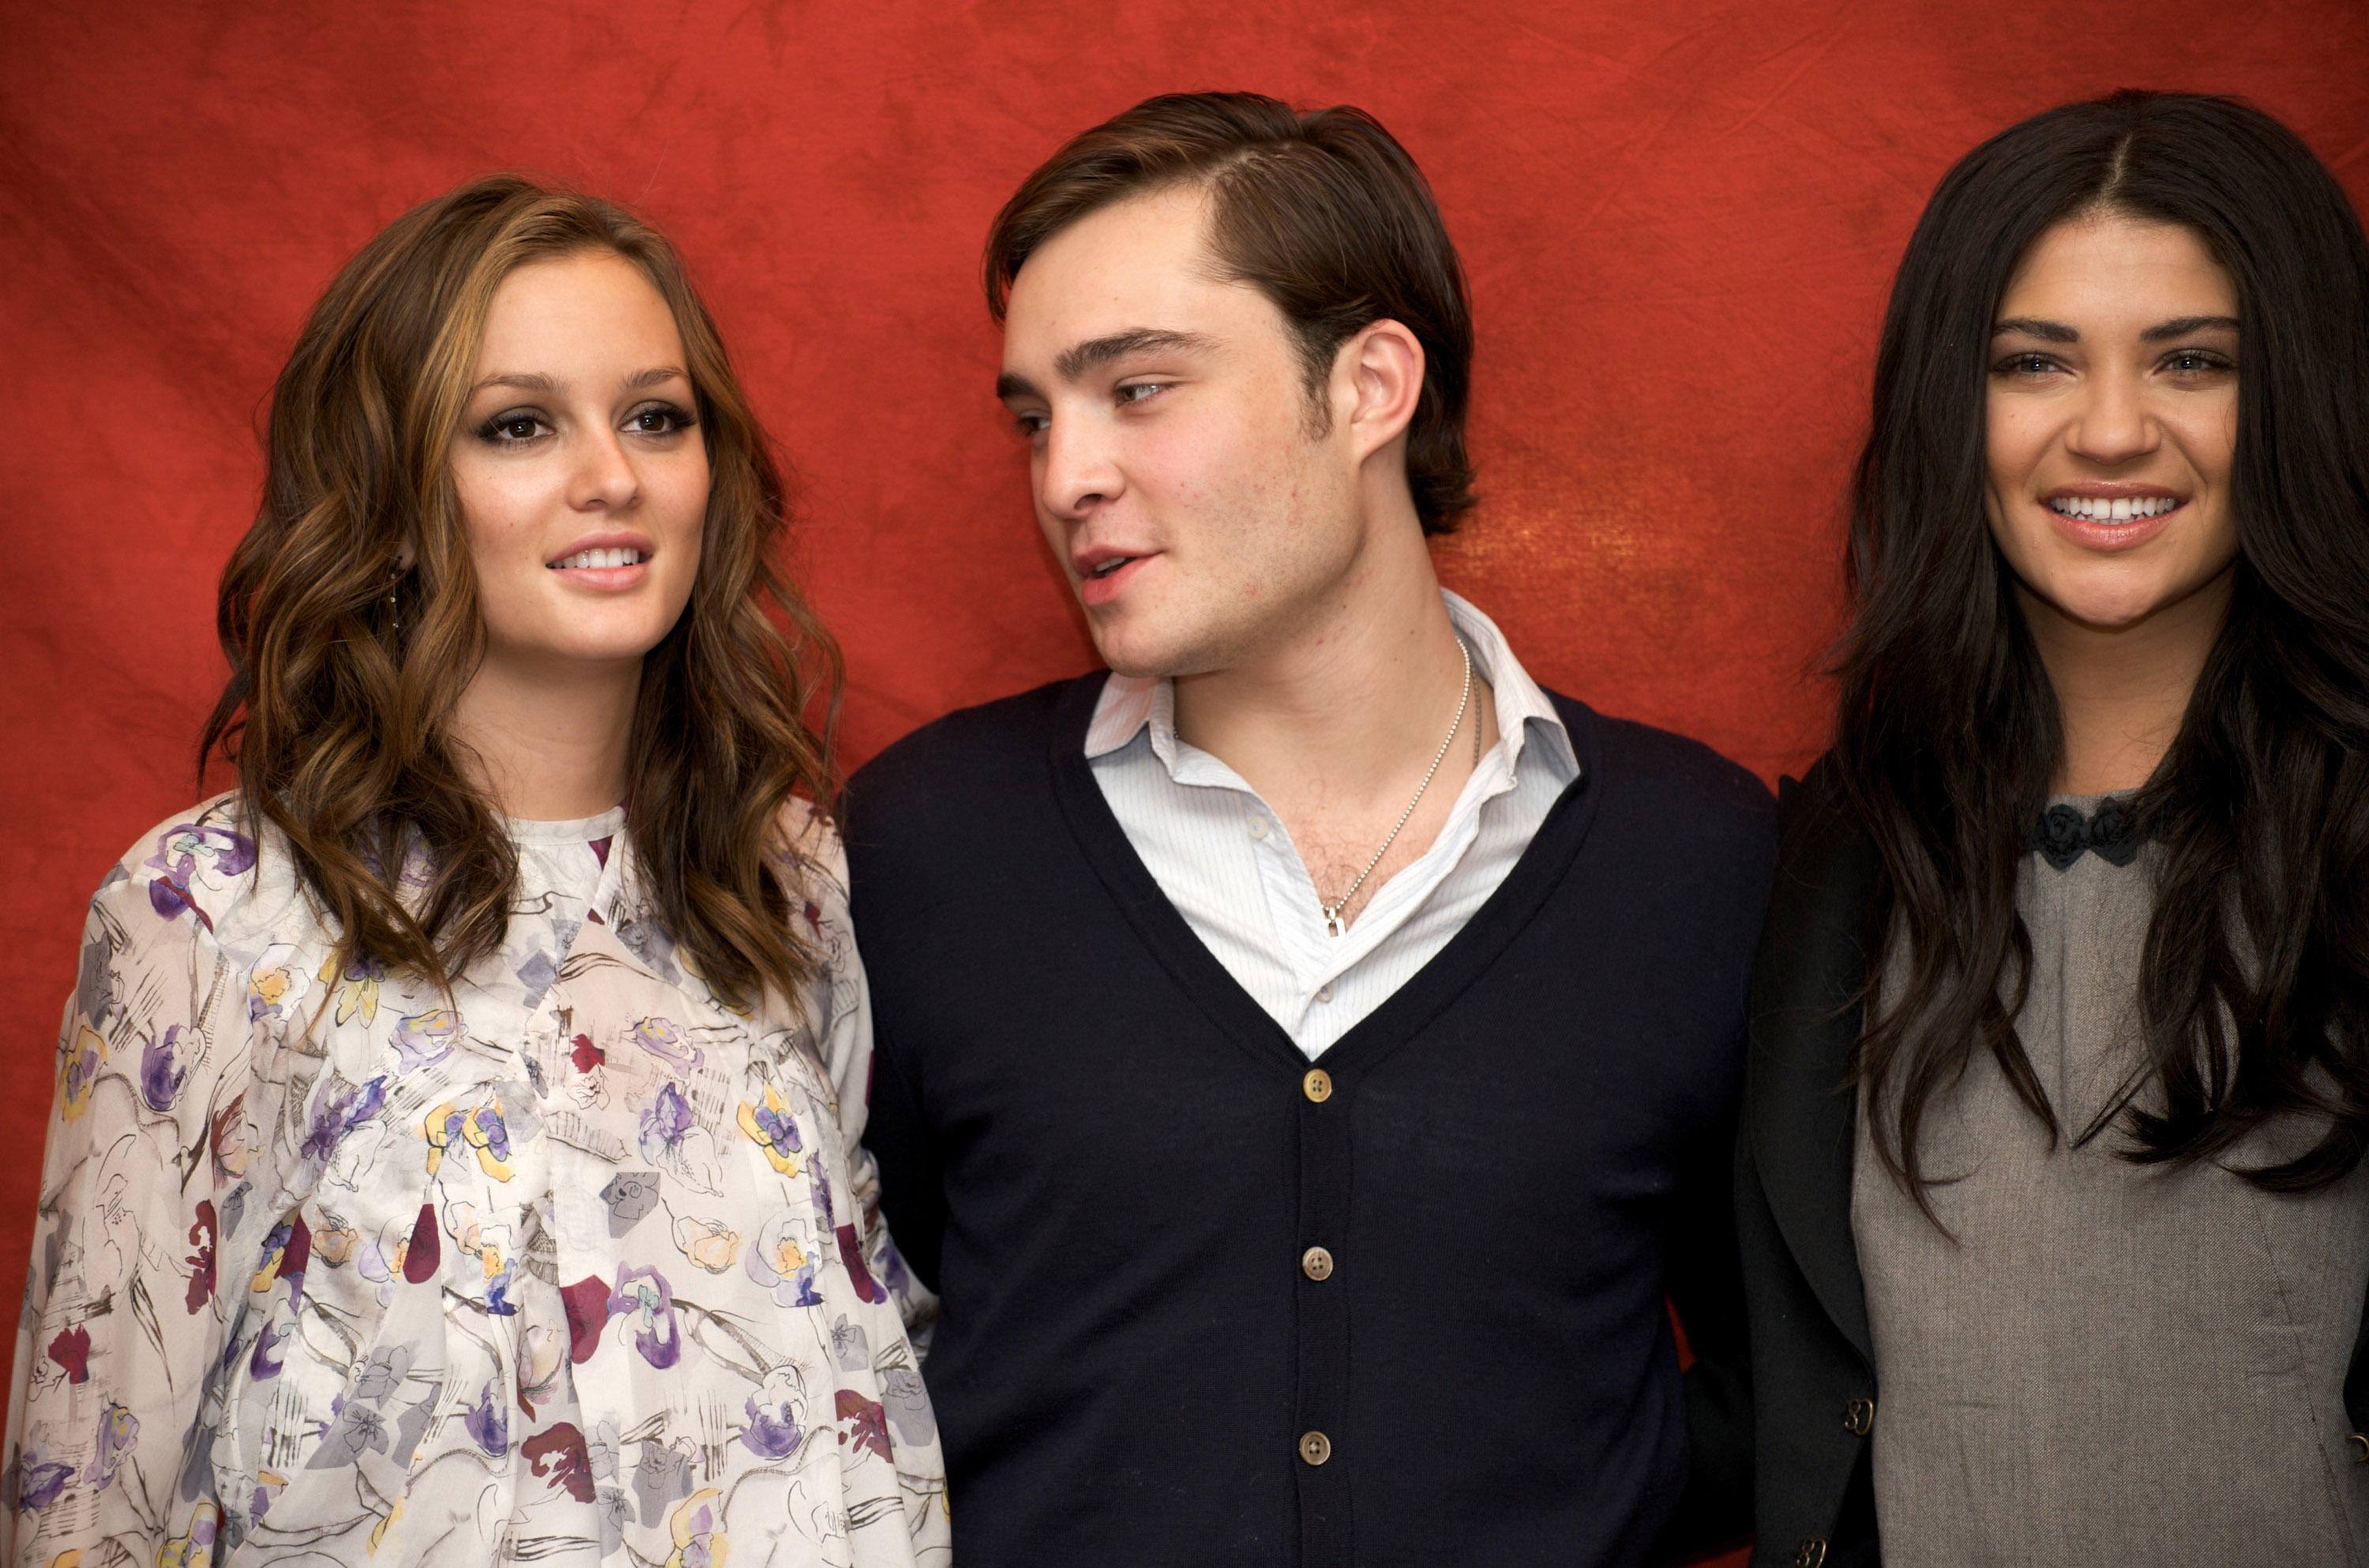 Leighton Meester, Ed Westwick, and Jessica Szohr posed for photos at a Gossip Girl press conference held in NYC in October 2008.